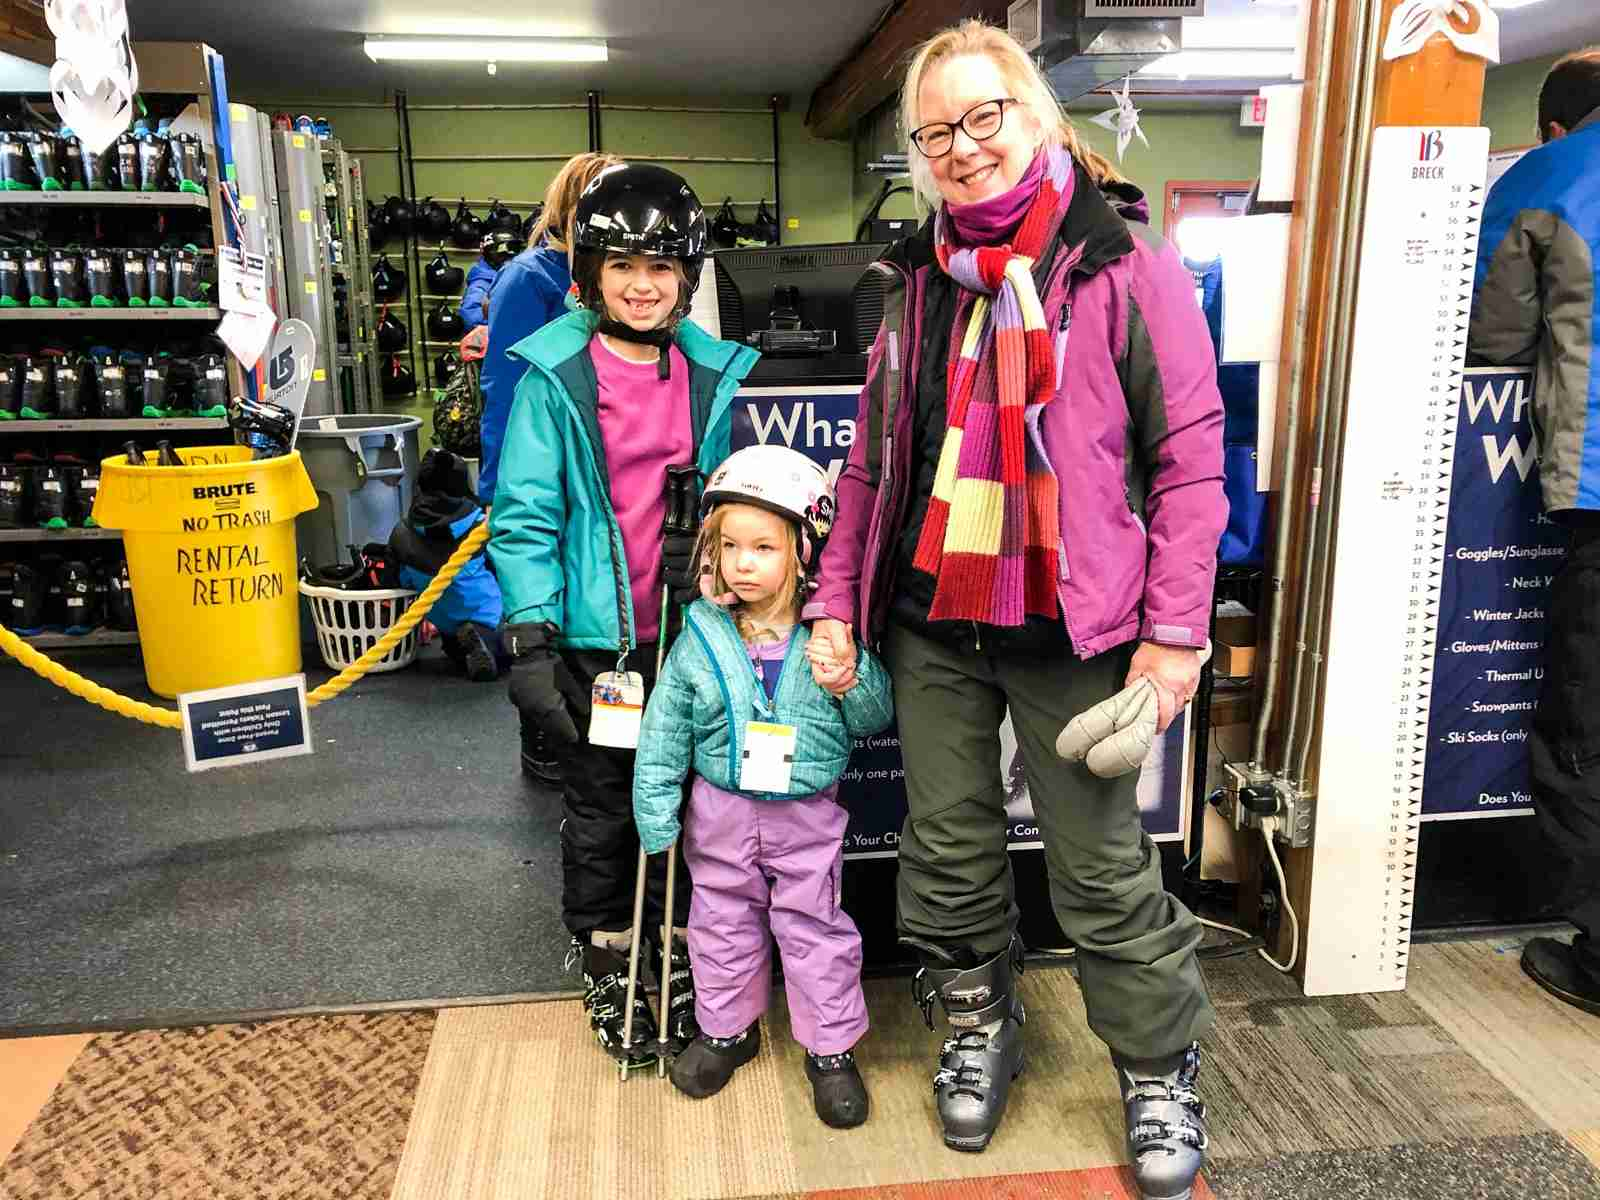 More ski school kids means more points